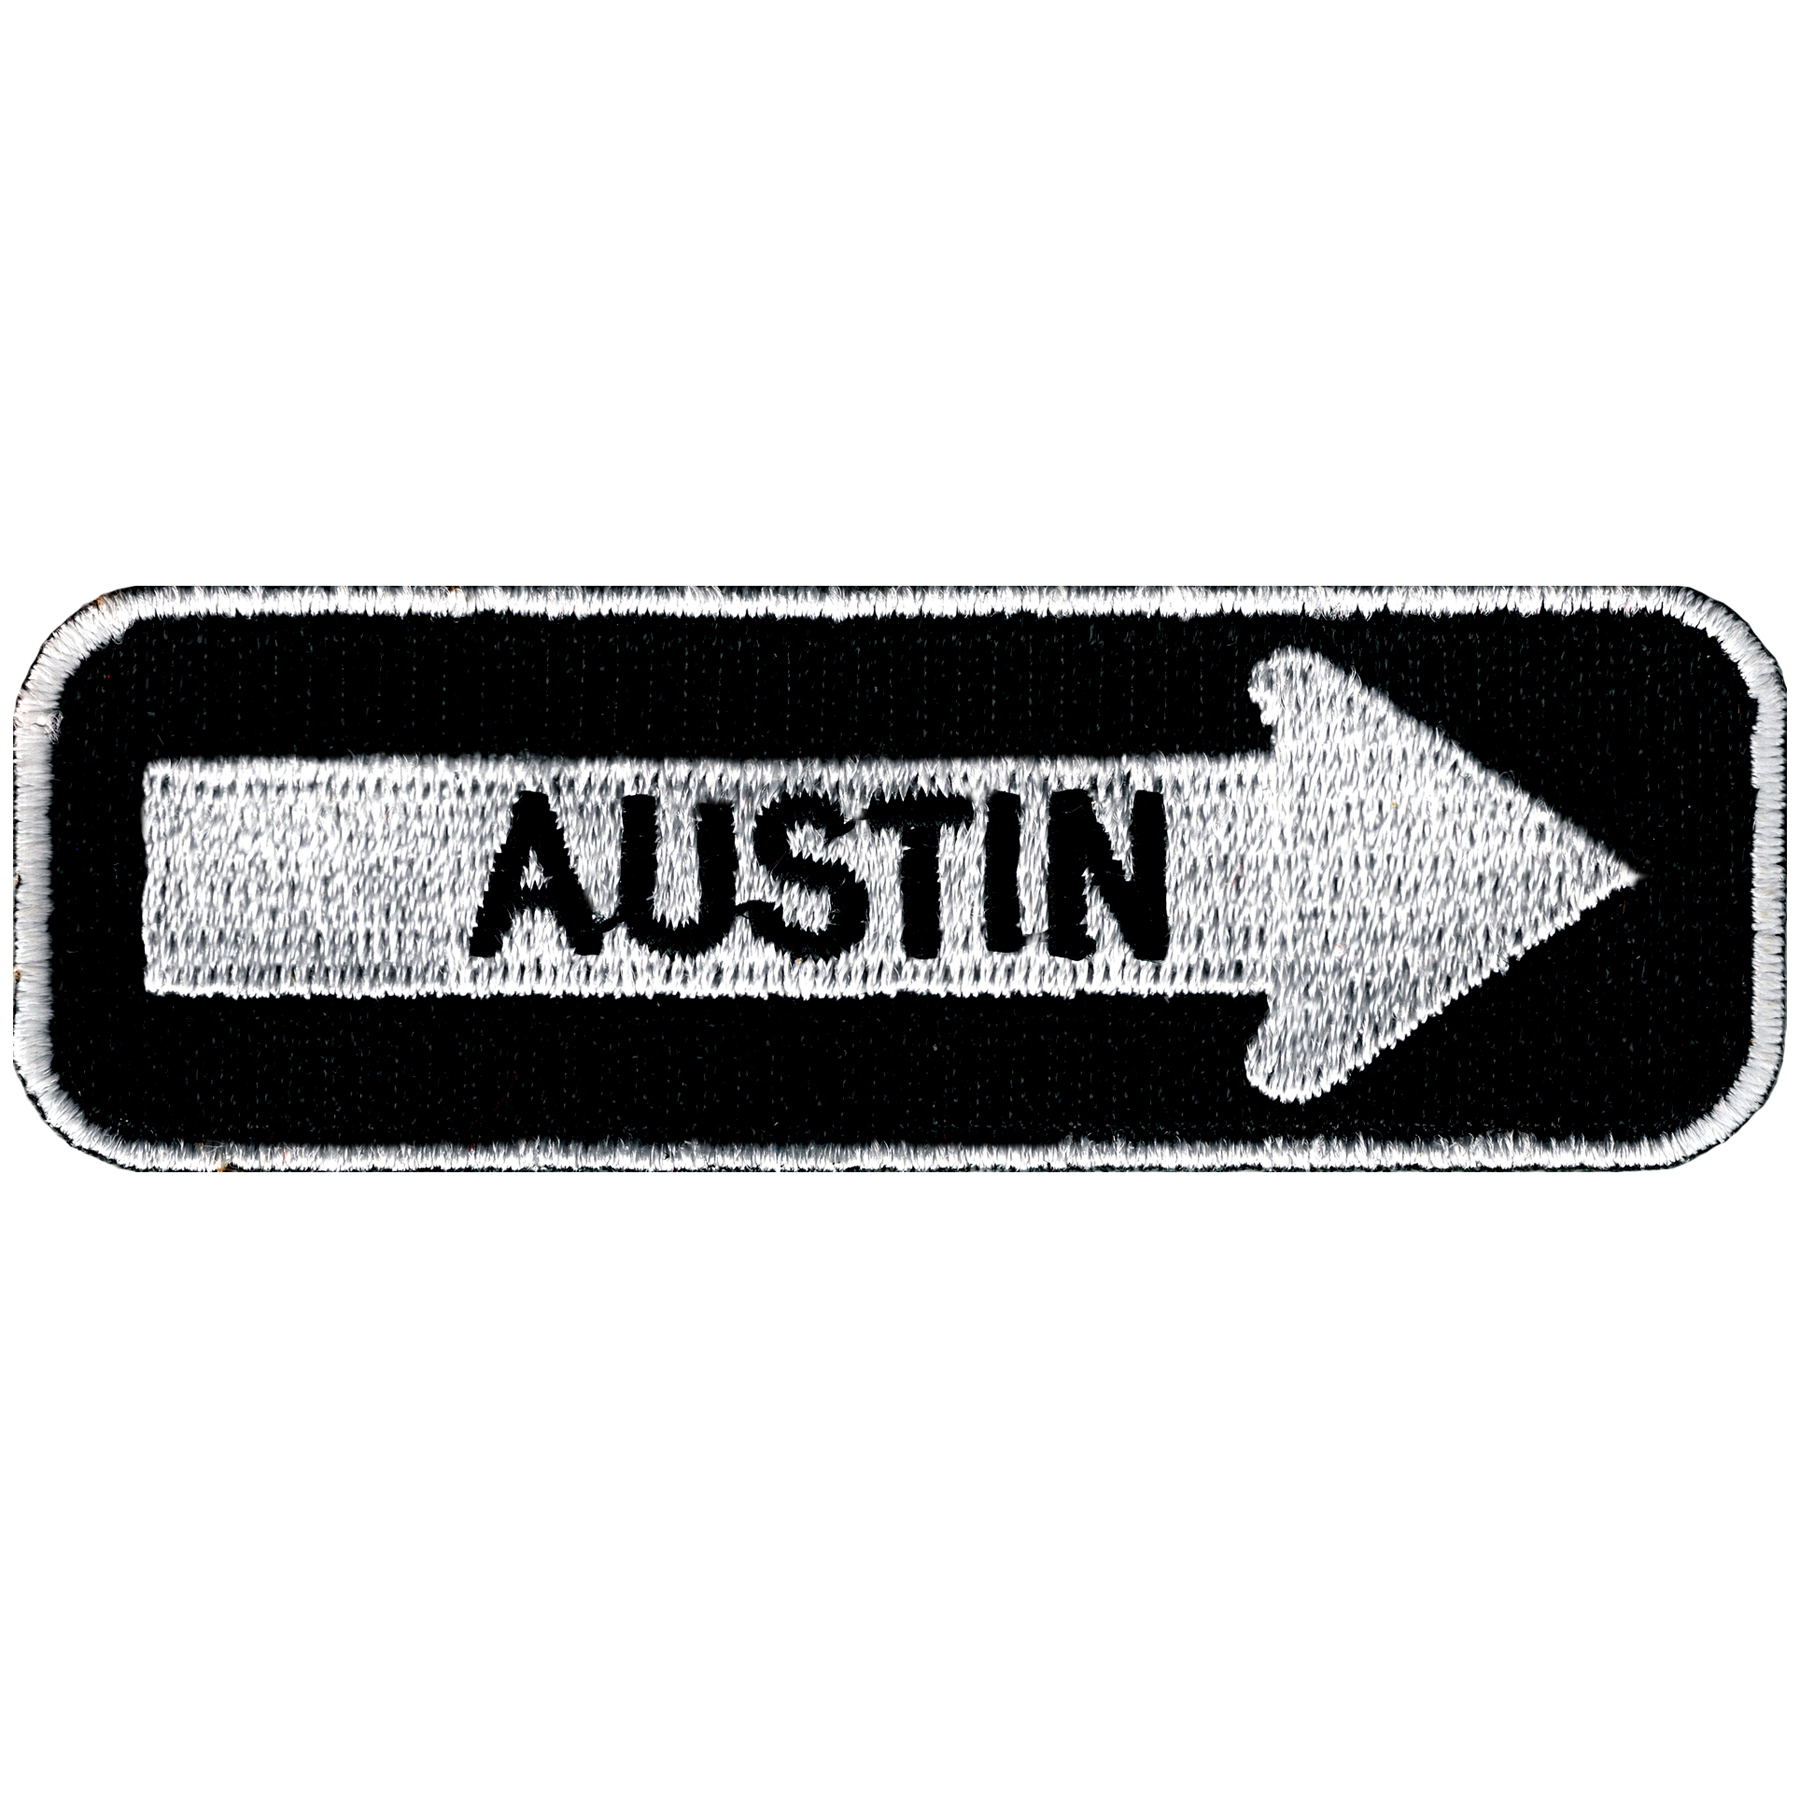 Austin One Way Sign Embroidered Iron-on Patch